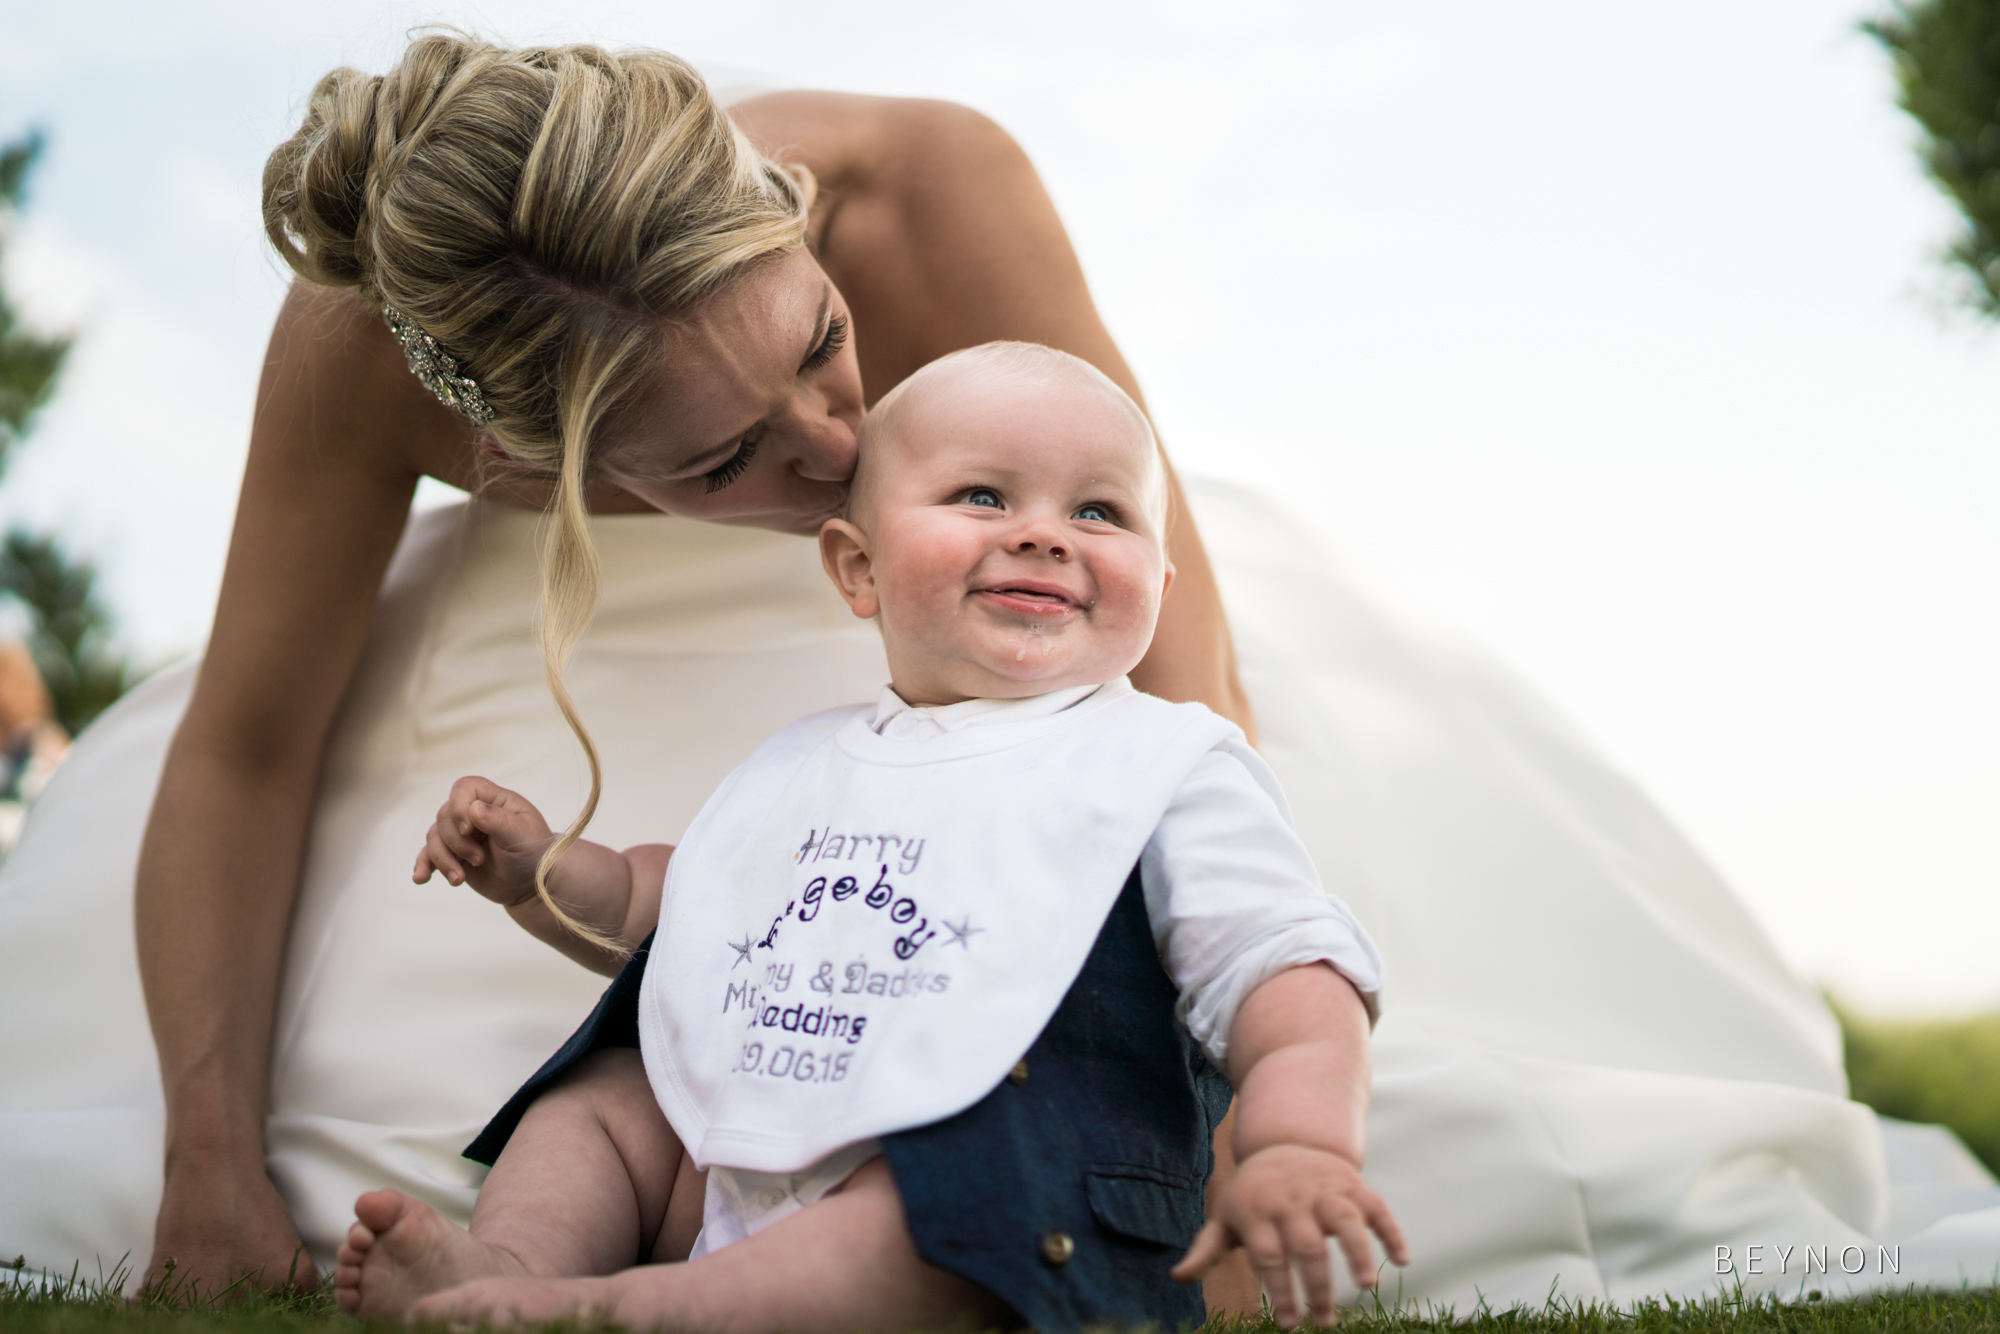 The bride with her son